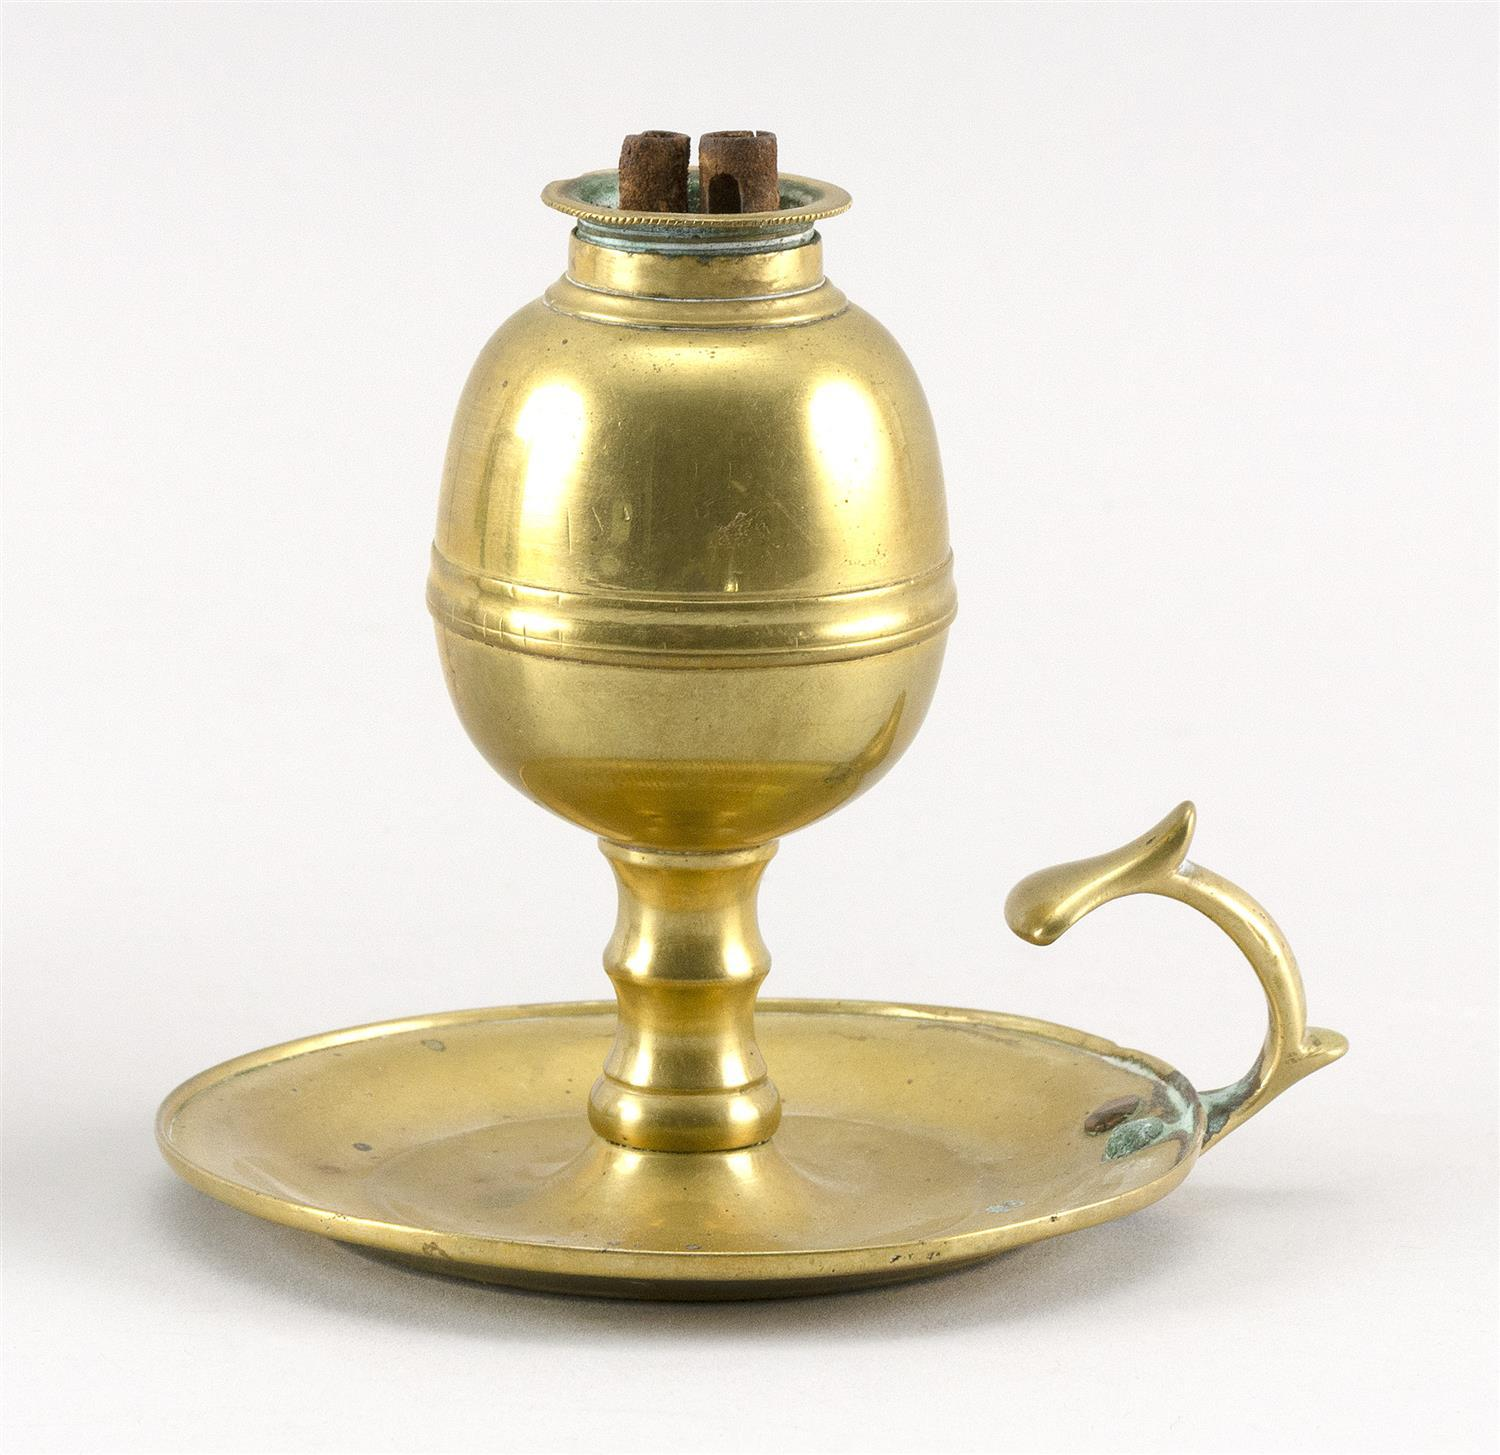 """BRASS WHALE OIL LAMP With screw-in burner and saucer base with thumb-grip handle. Height 4""""."""